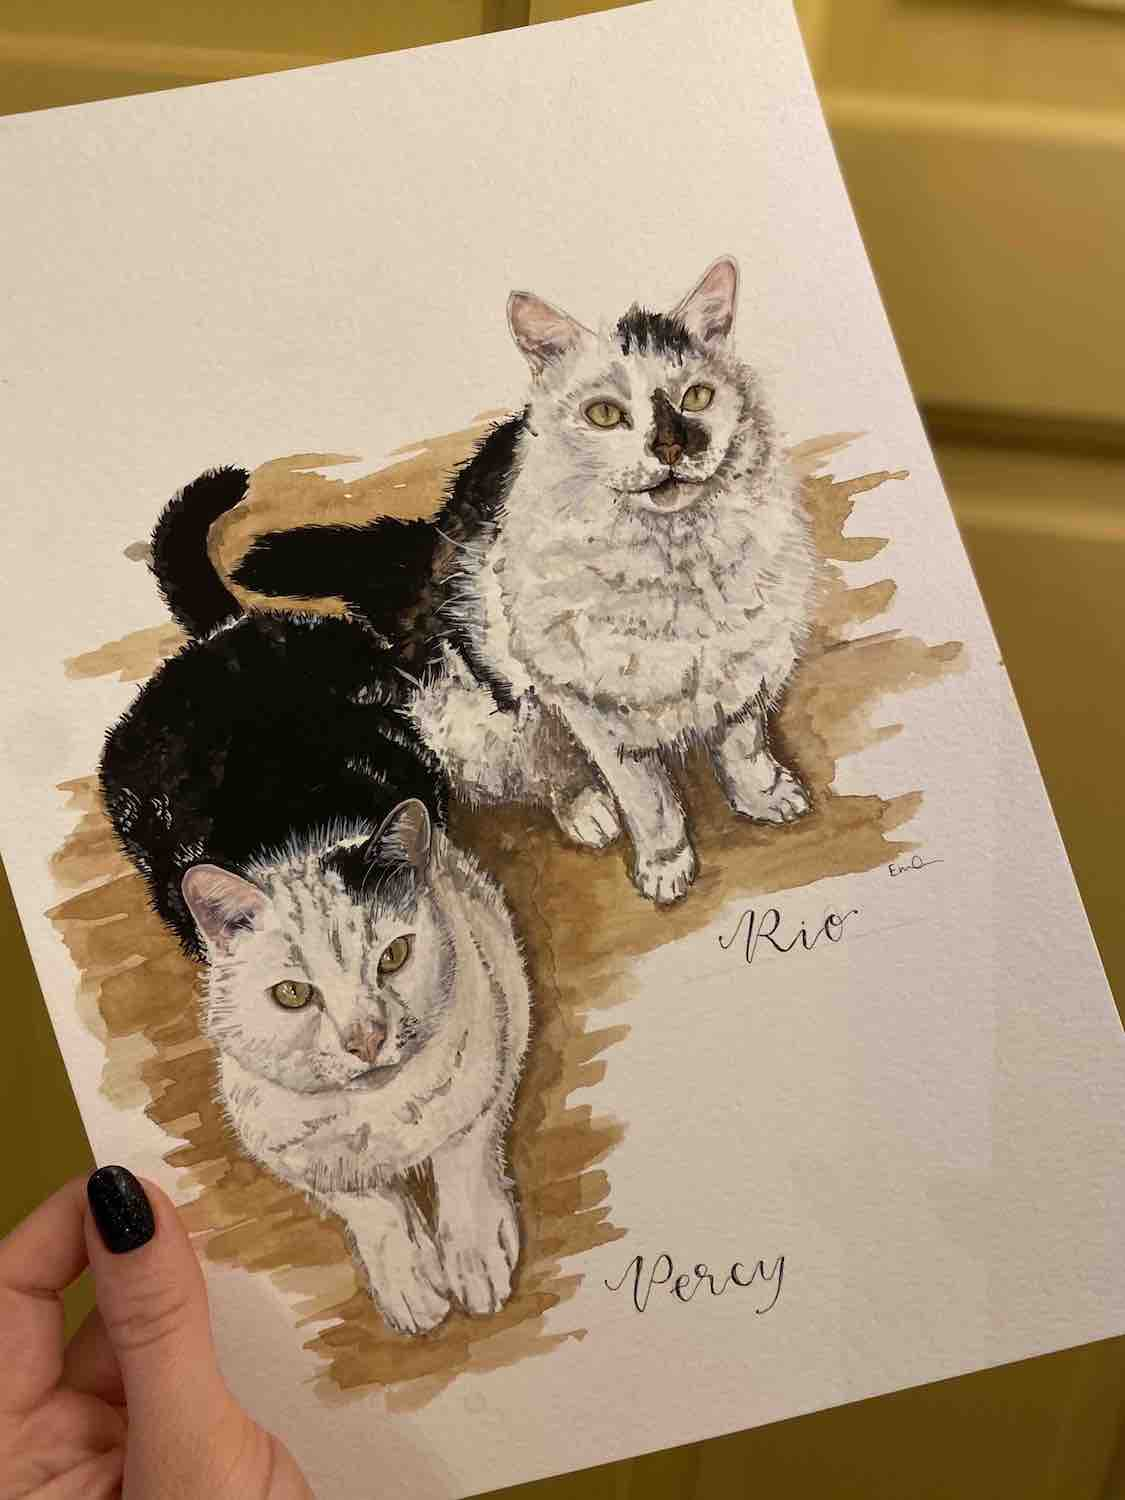 Detailed watercolour painting of two white and black cats. Painting is held up by a hand on the left side against a mustard yellow background.